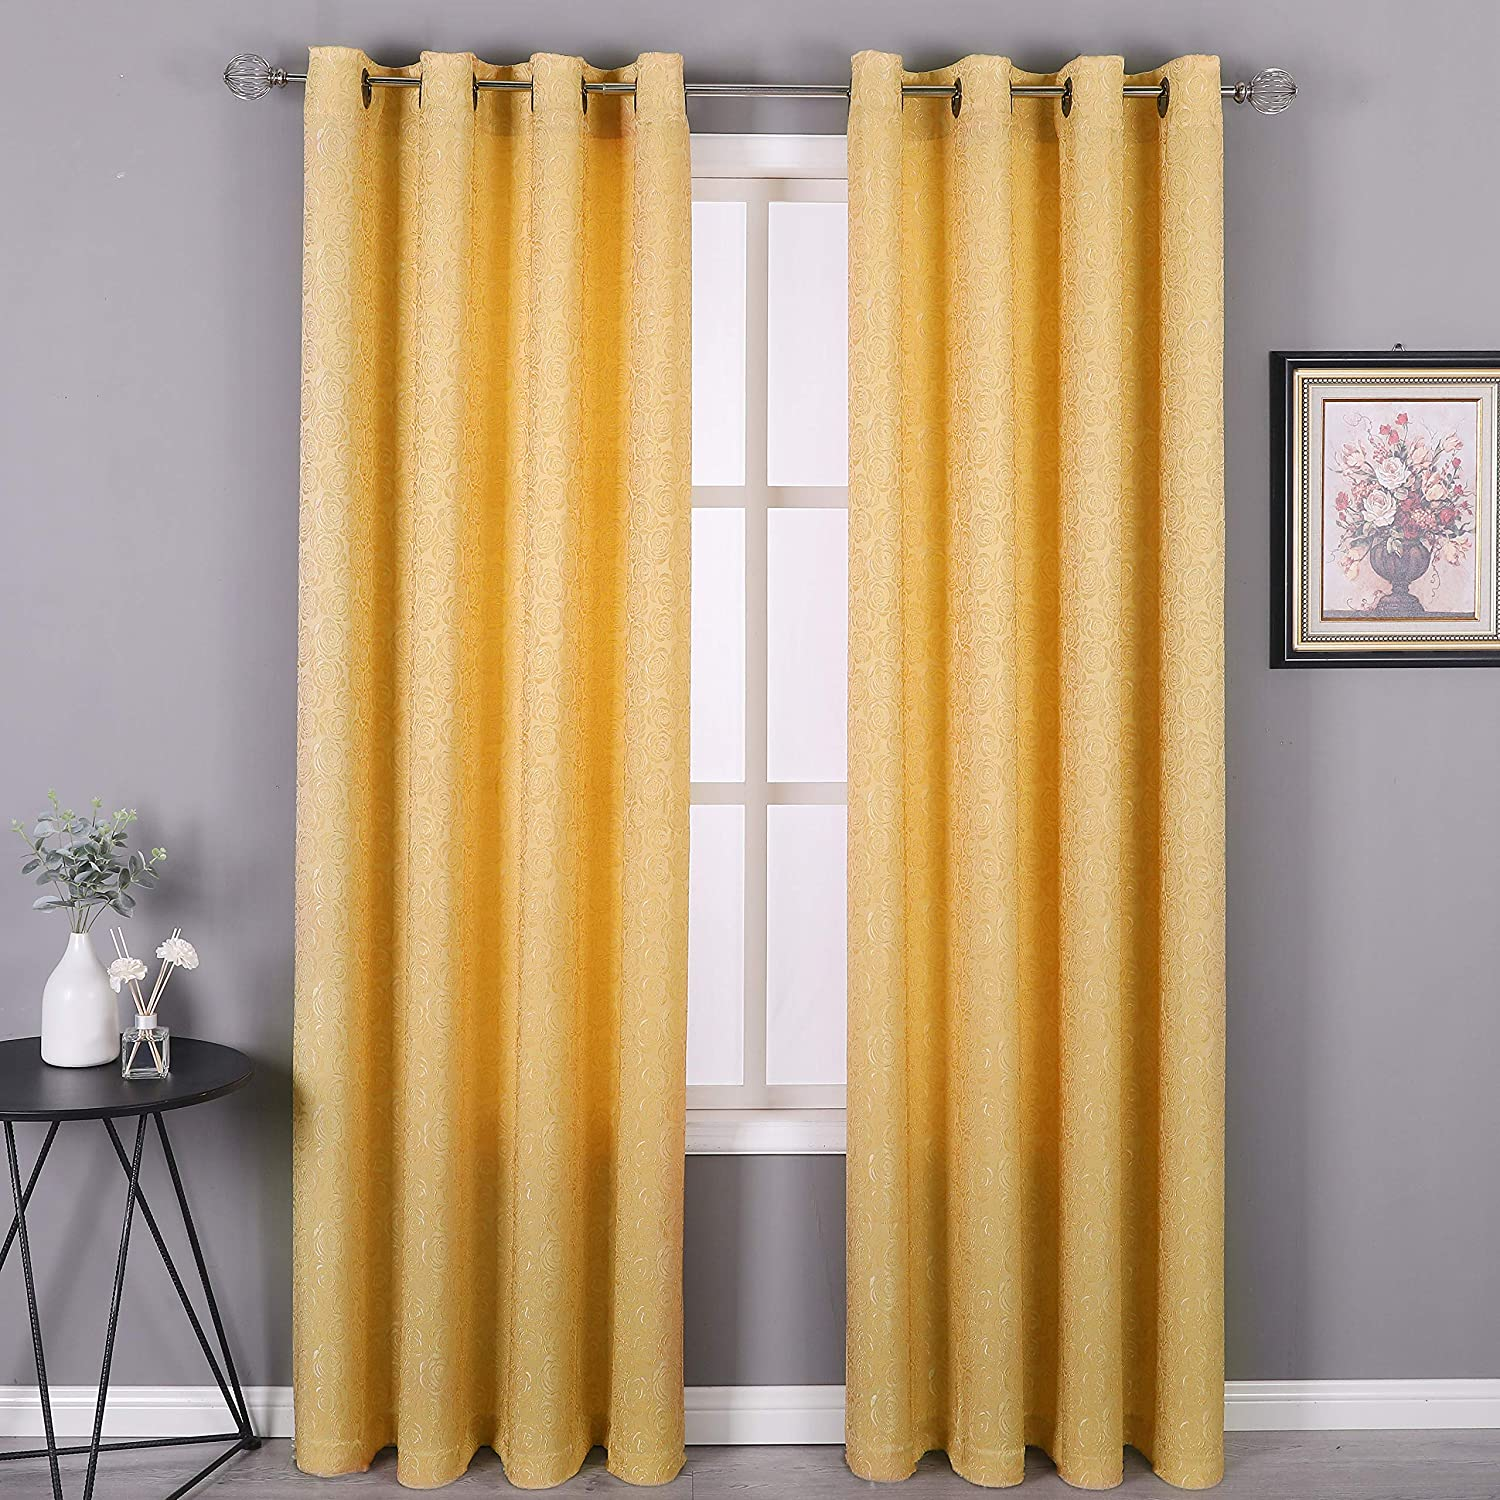 HEJEME Gold Curtains 2 Panels (54 x 84inches) with Elegant Rose Jacquards - Semi Blackout Room Darkening Drapes with Grommets Top for Bedroom Living Room